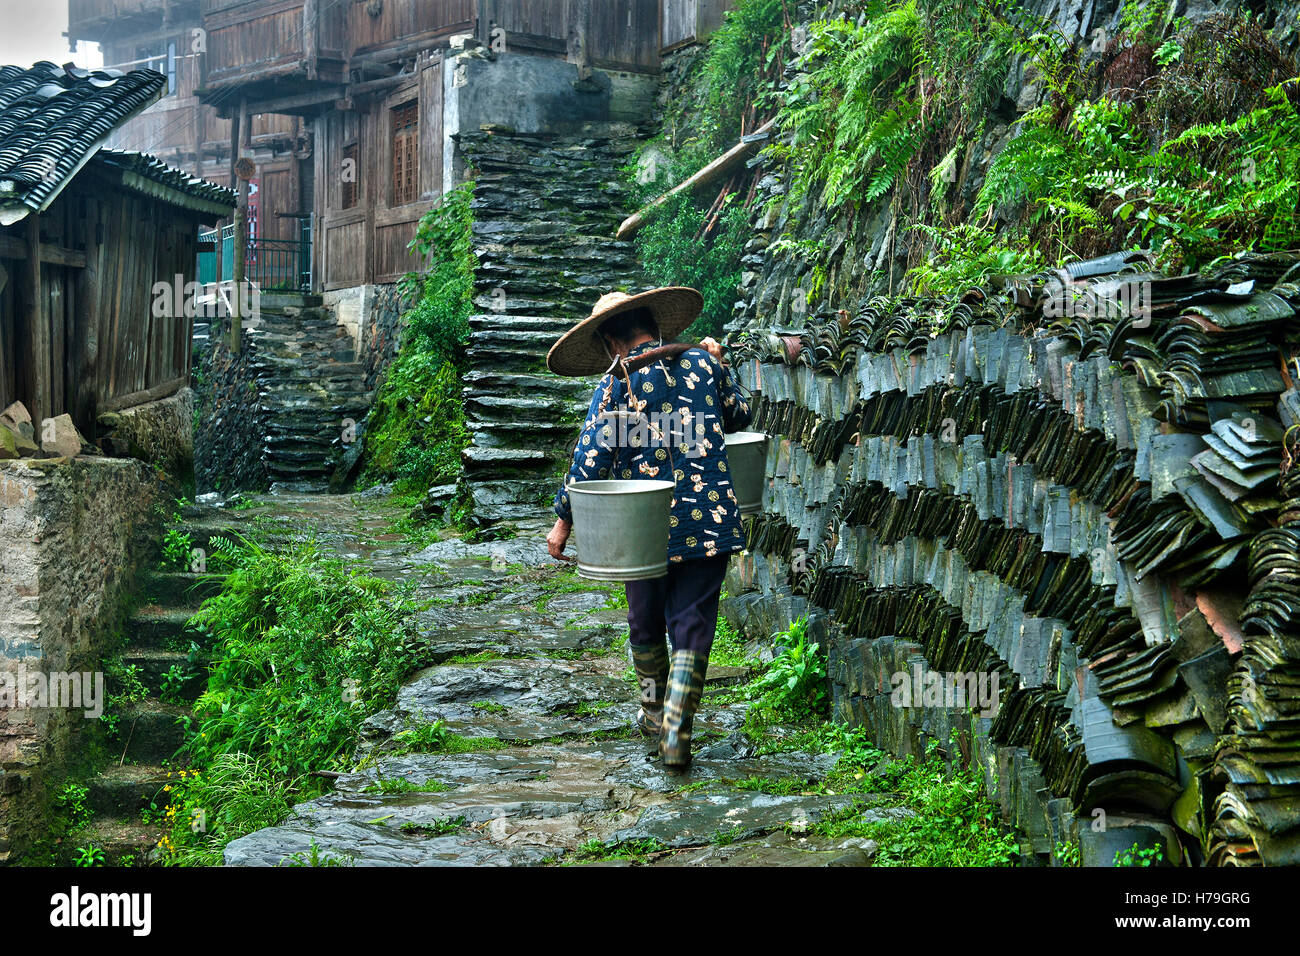 A woman walks carrying a balancer along the stone streets of her wood Tang'an village over Zhaoxing Stock Photo